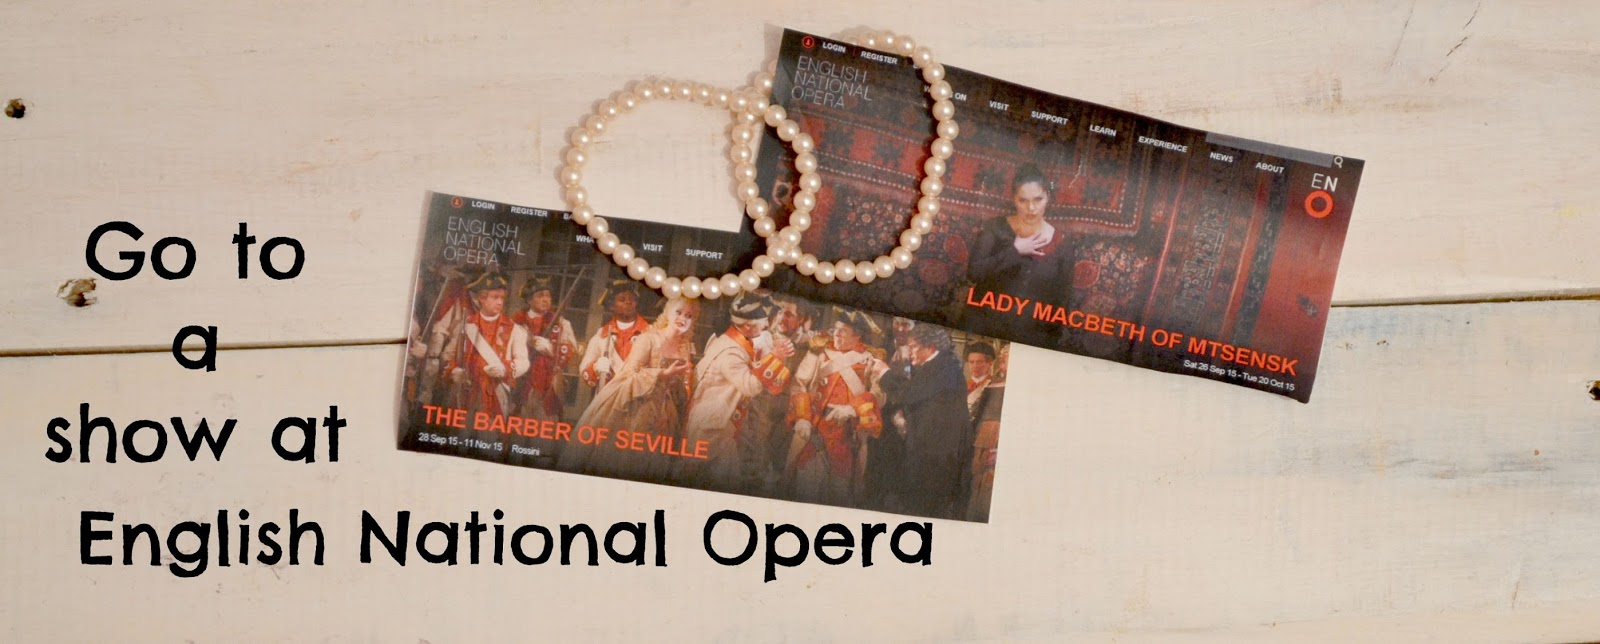 Opera Tickets In London